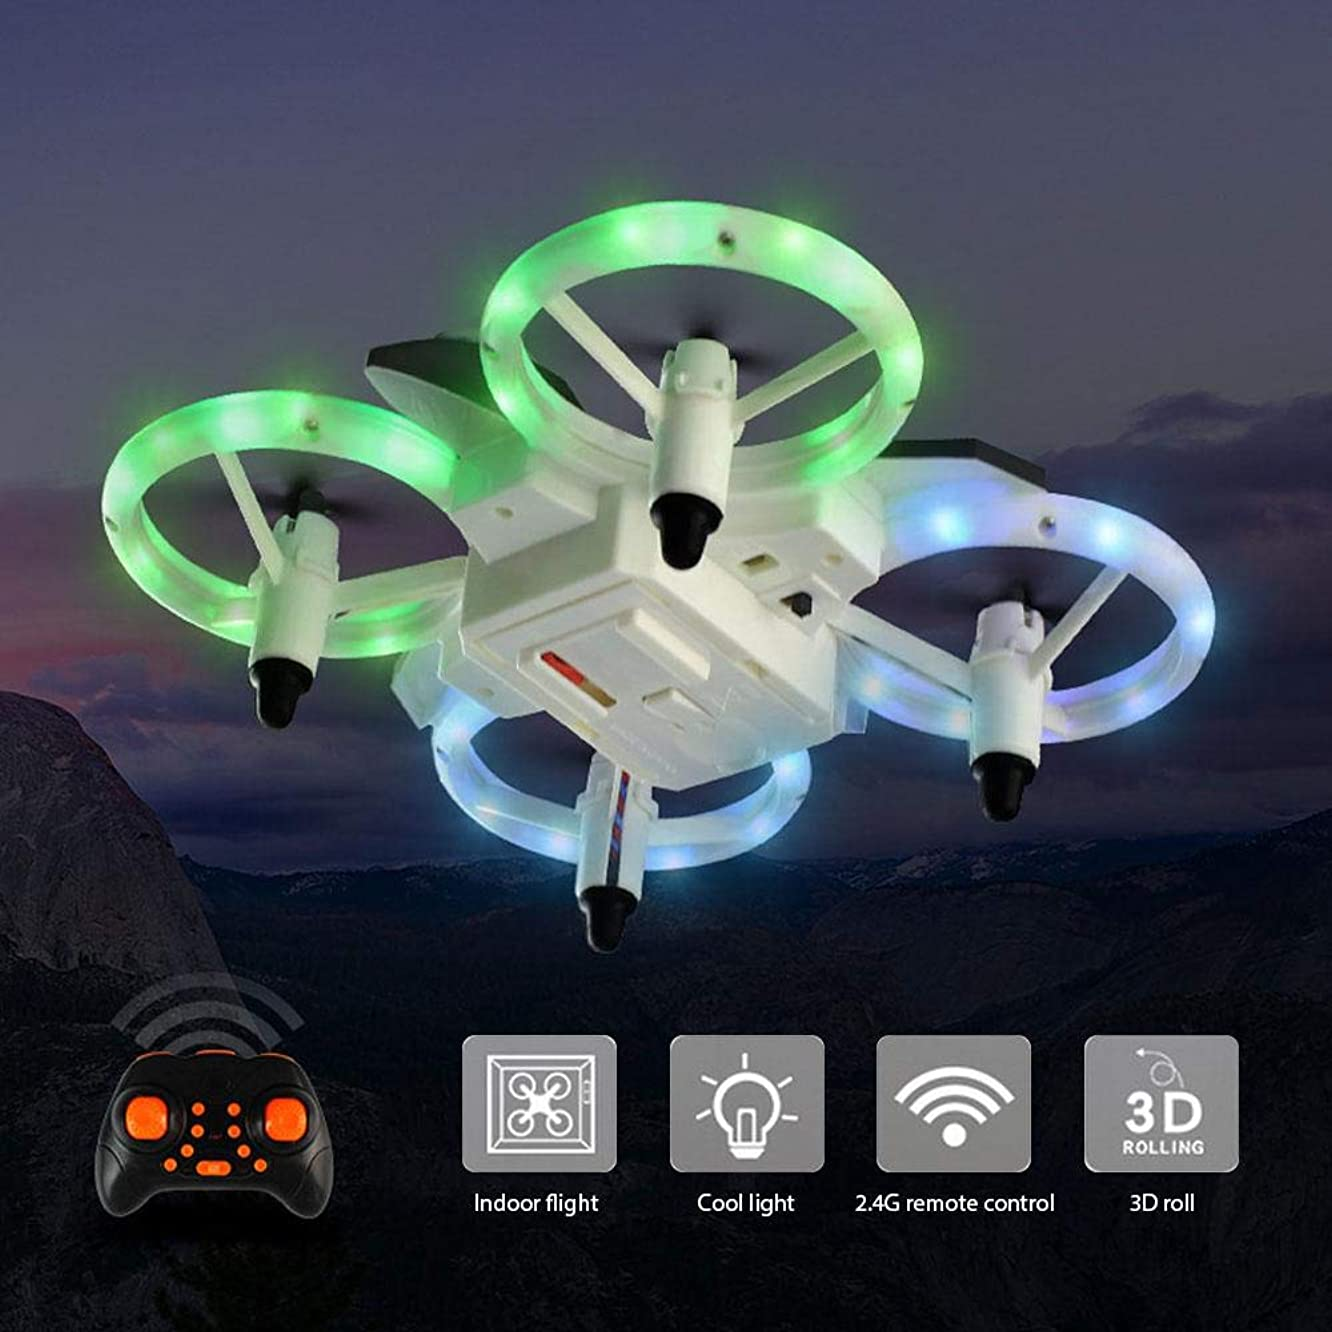 TEEPAO Mini Drone for Kids Beginners RC Remote Control Quadcopter Drone w/ 2 Color LED Lights & 3D 360° Flips Rolls & Hovering & 2 Gift Extra Rotor Blades - Headless Fly Toy